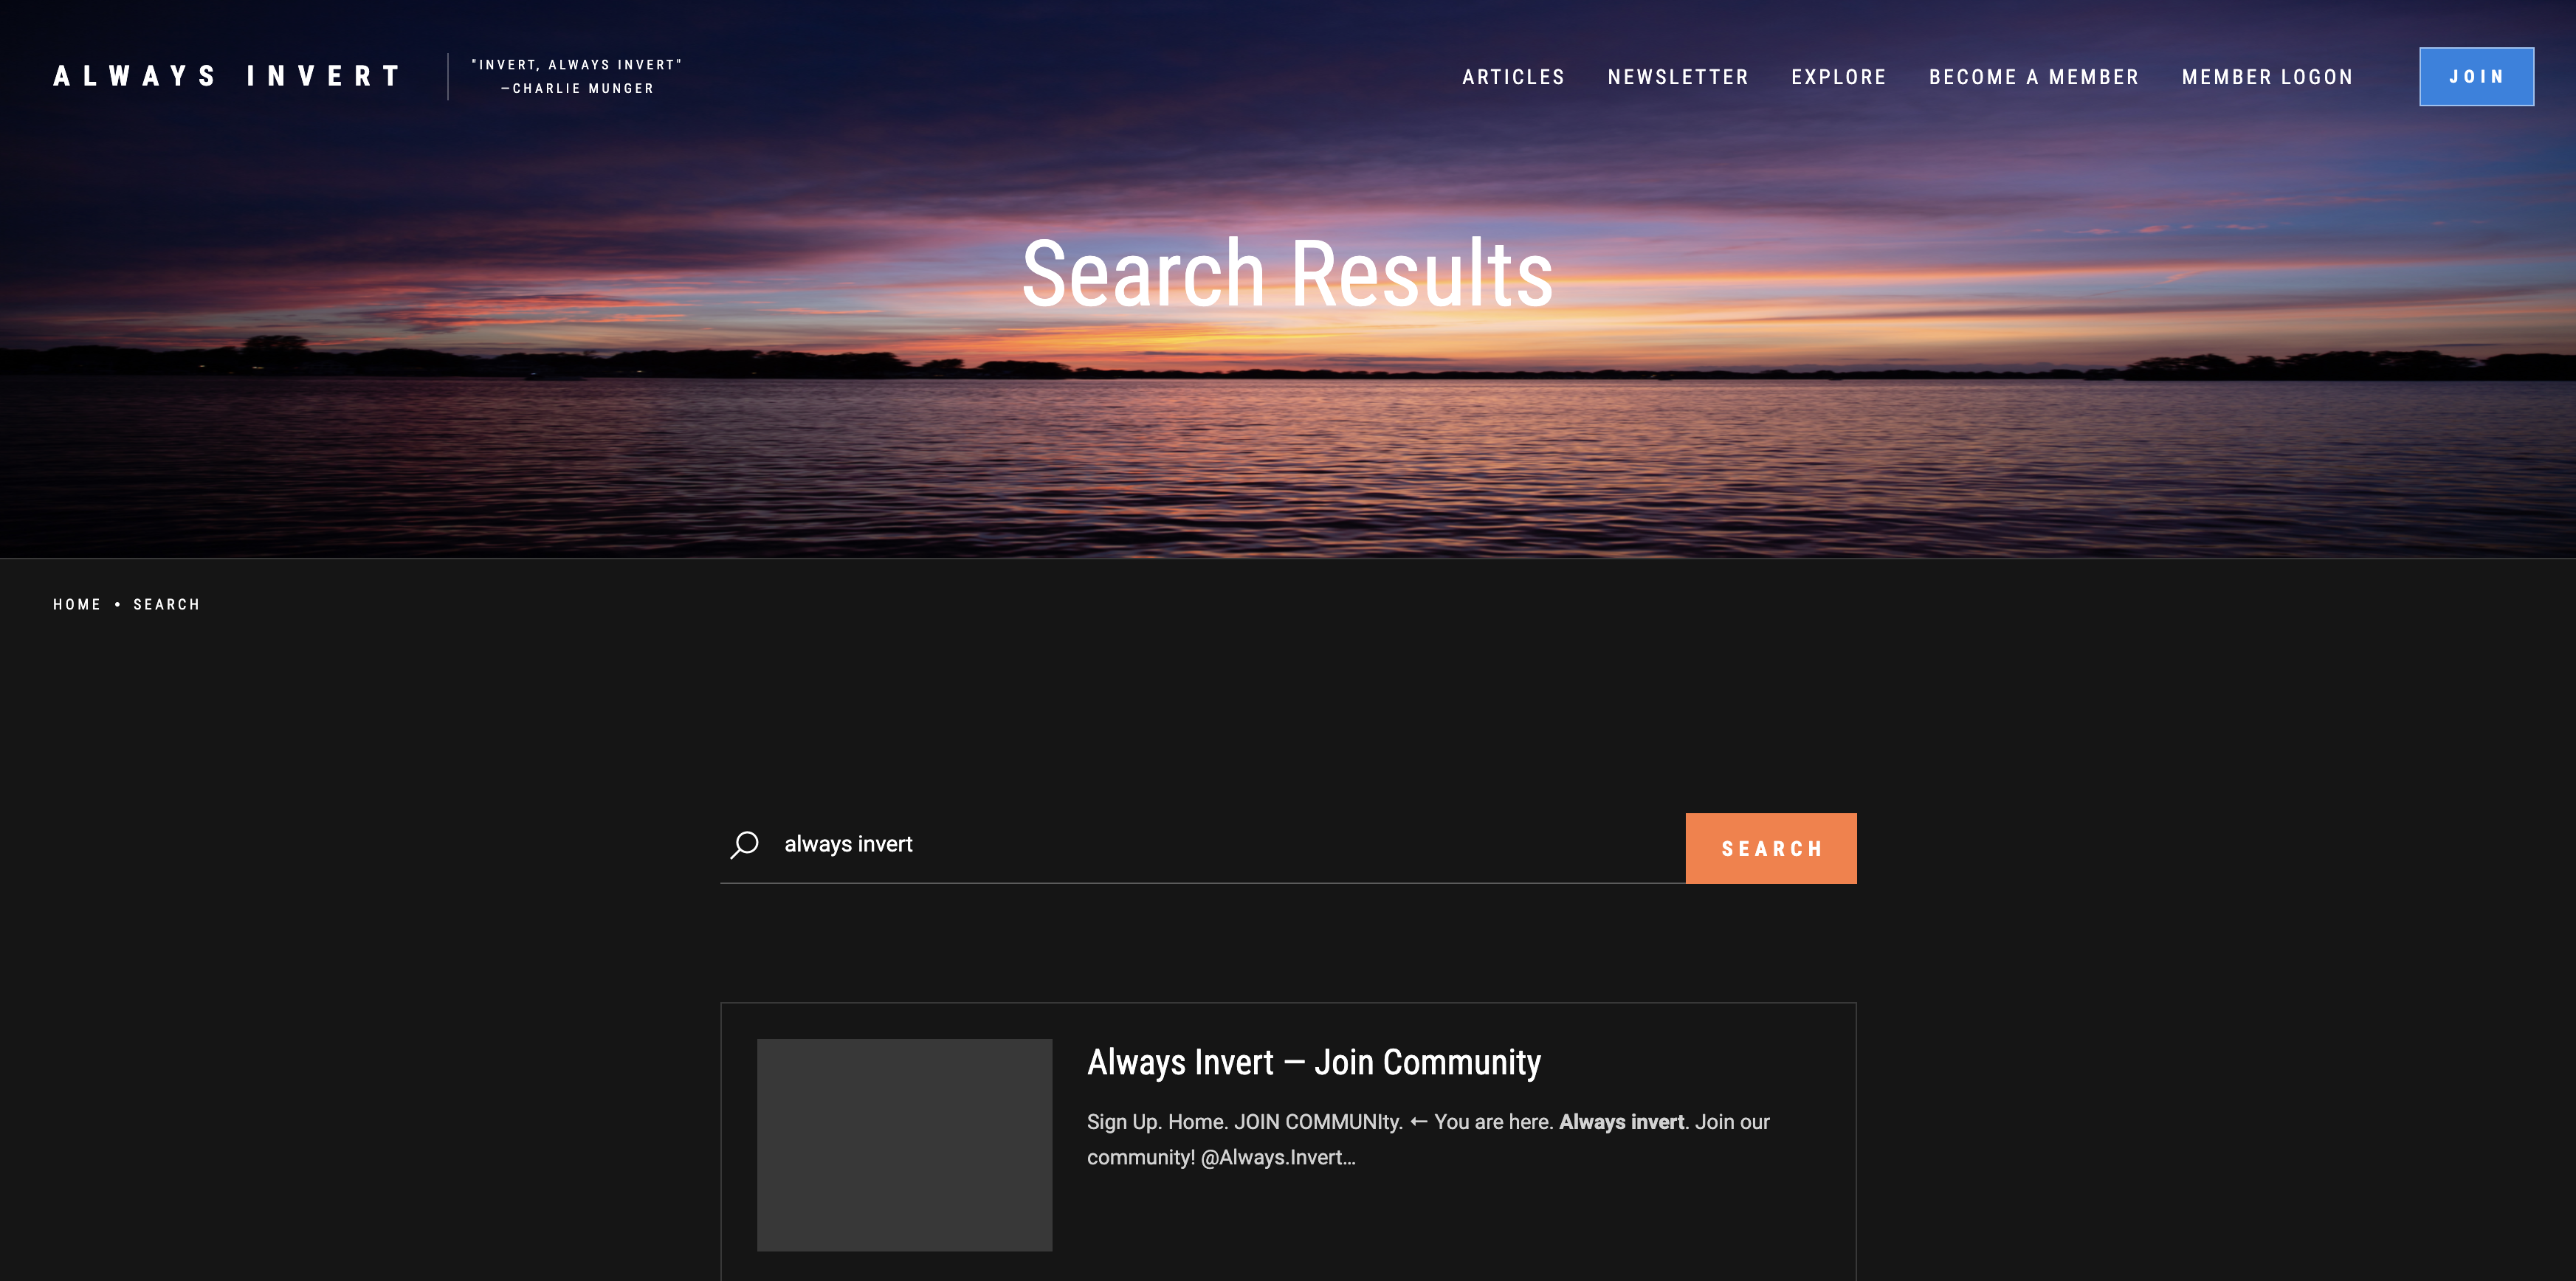 Screenshot of the Search Results web page